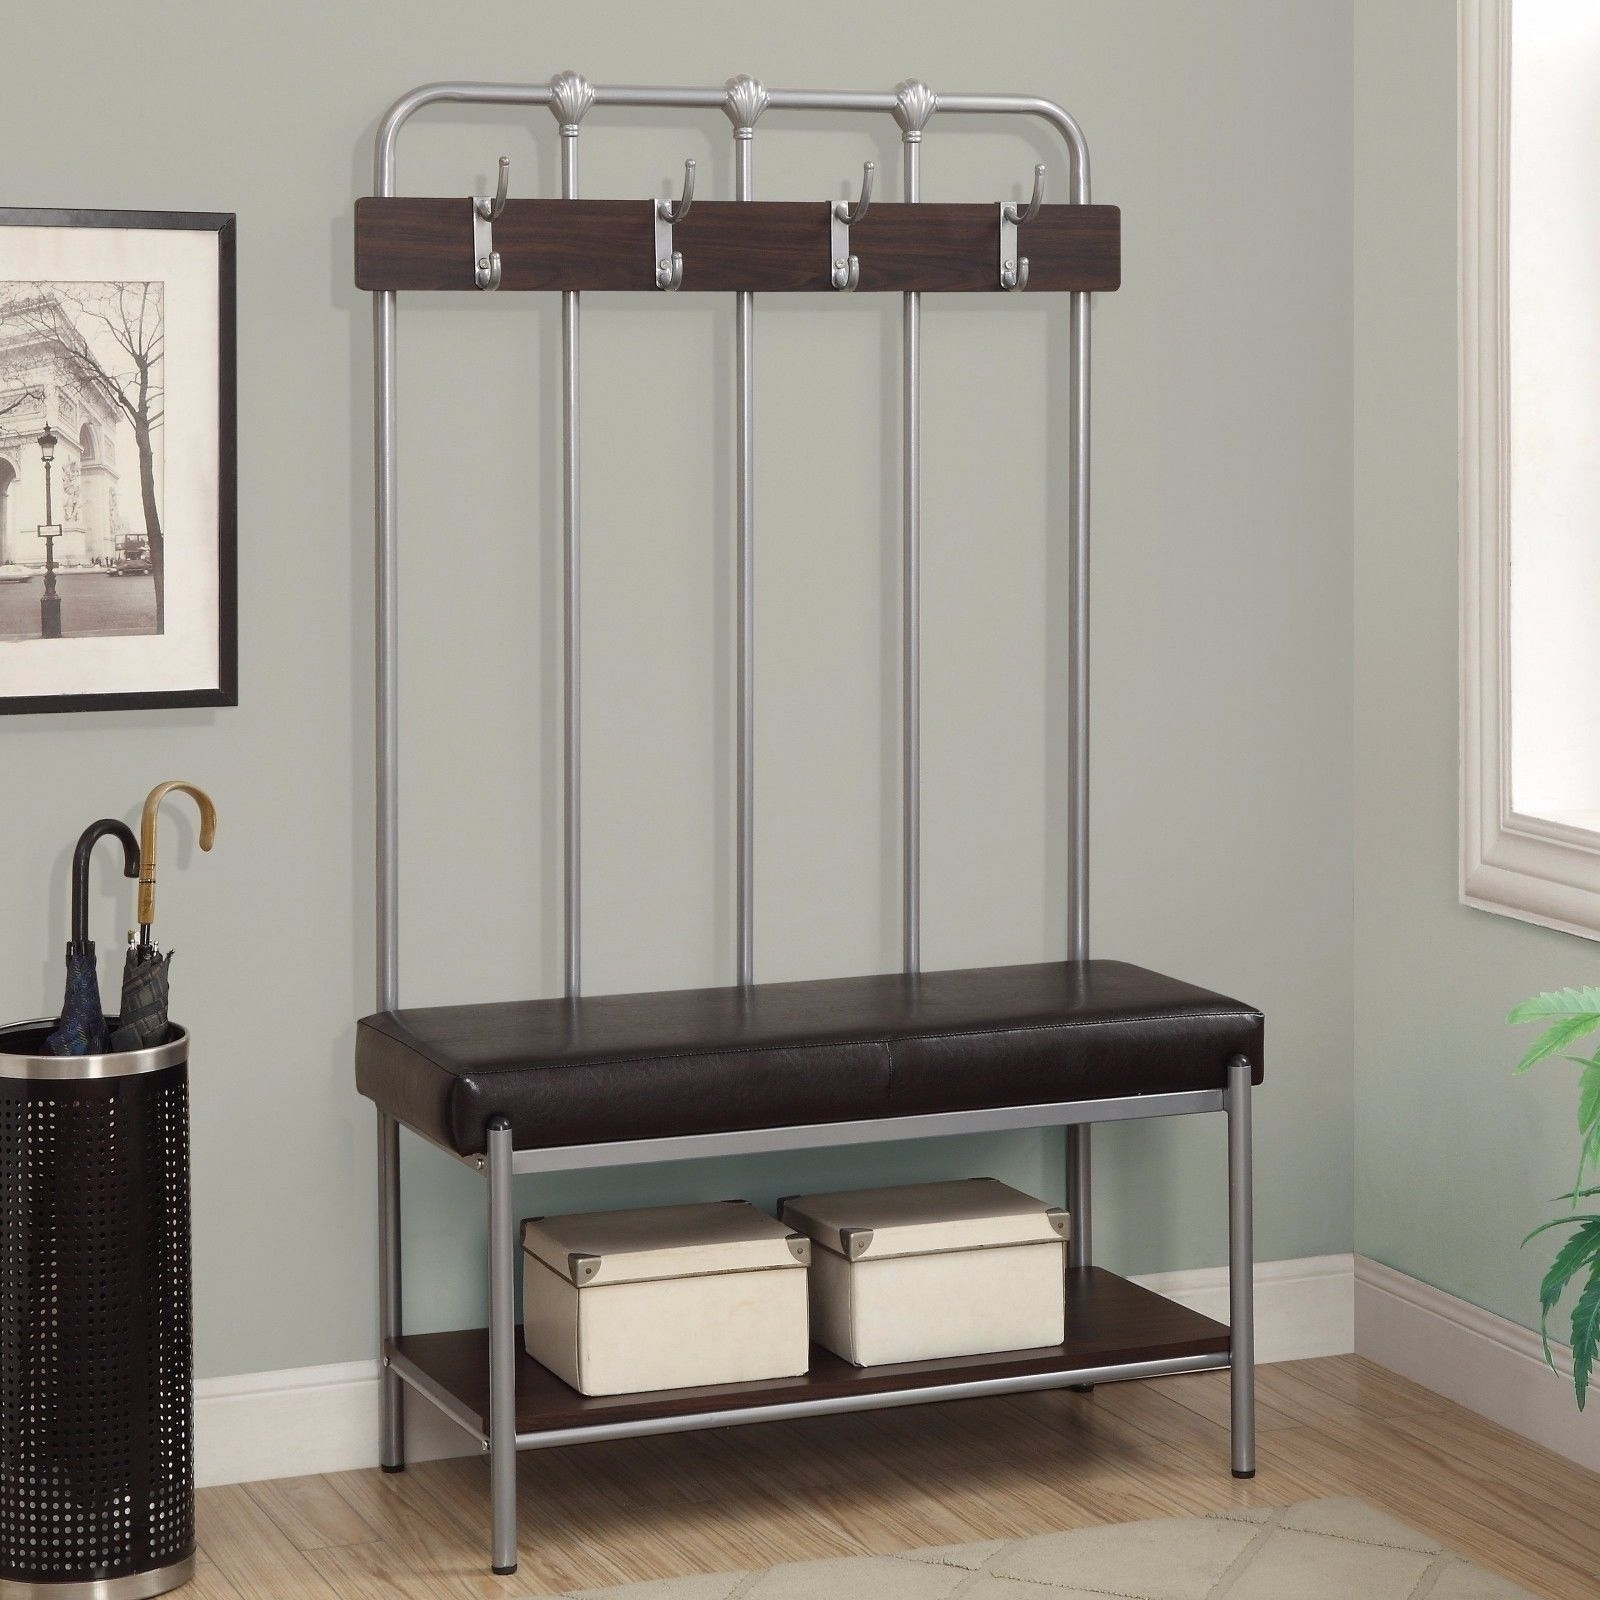 New Hall Tree Bench Coat Rack Entry Way Mud Room Metal Seat Storage Silver Brown Ebay